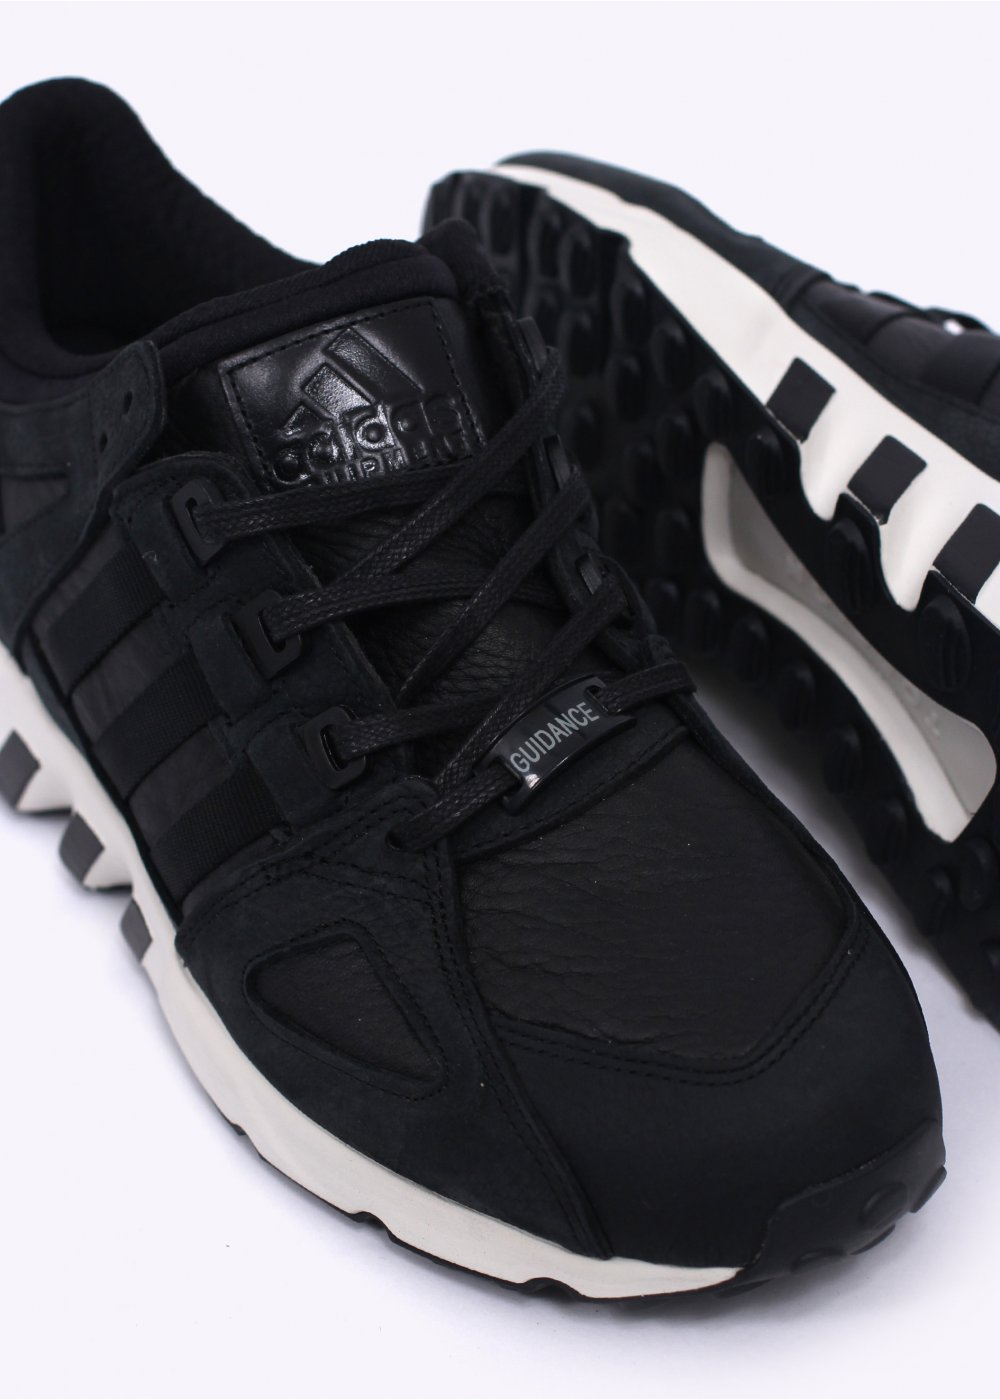 280bf2fcb494 adidas Originals Footwear EQT Equipment Running Guidance 93 Trainers ...